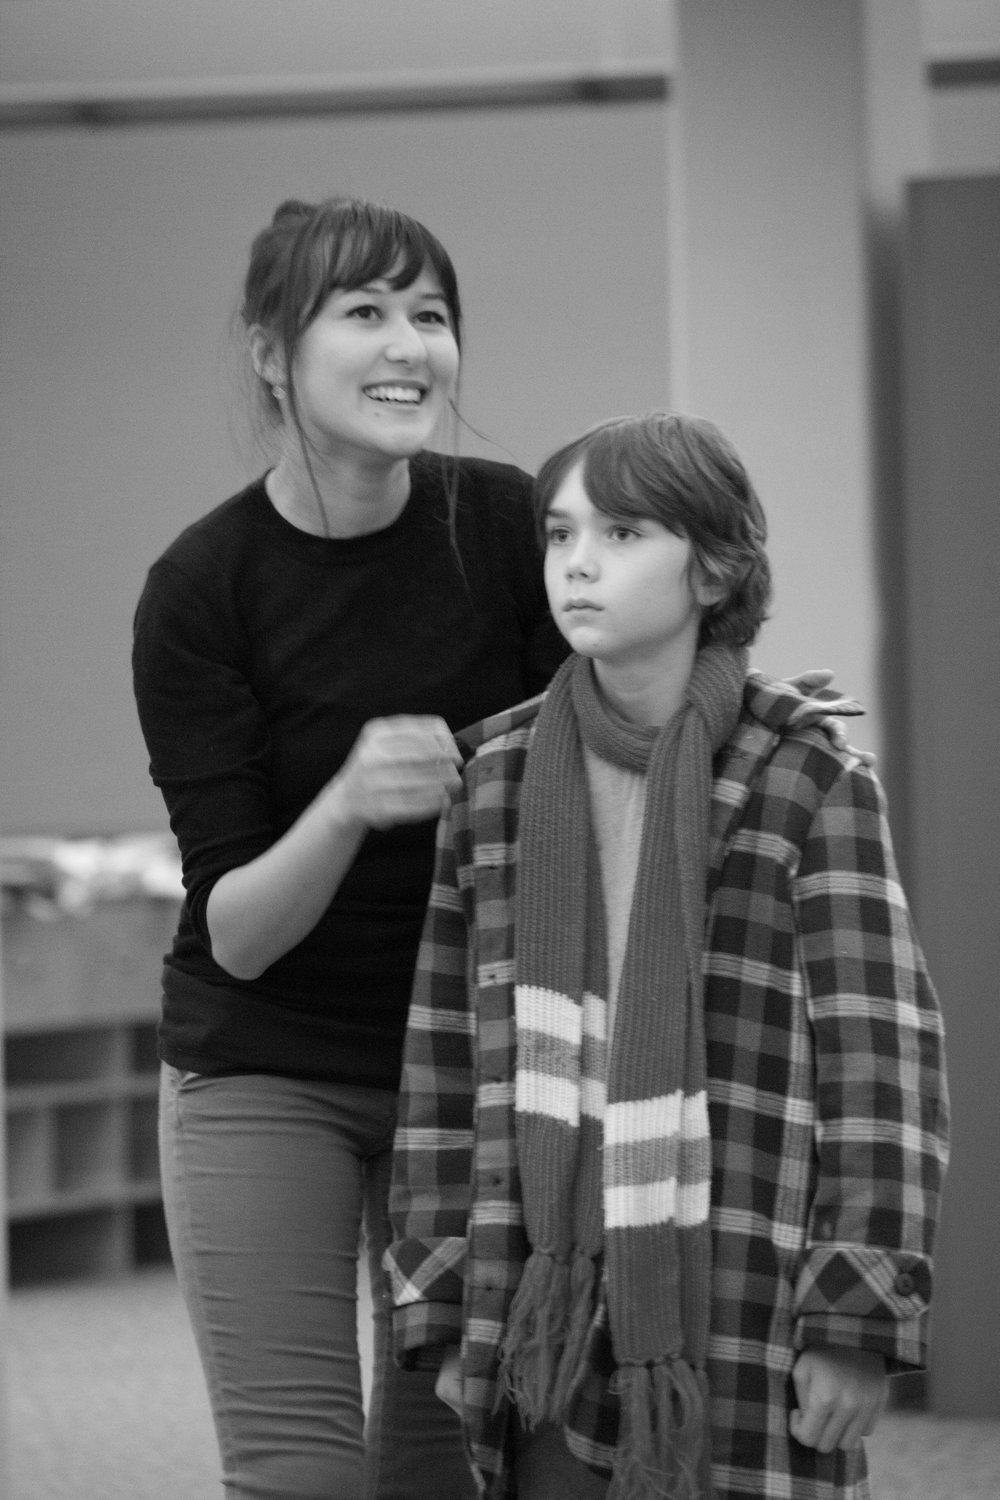 Emily Gardner Hall (Snow Queen) and Dylan Lowe (Cade) in rehearsal